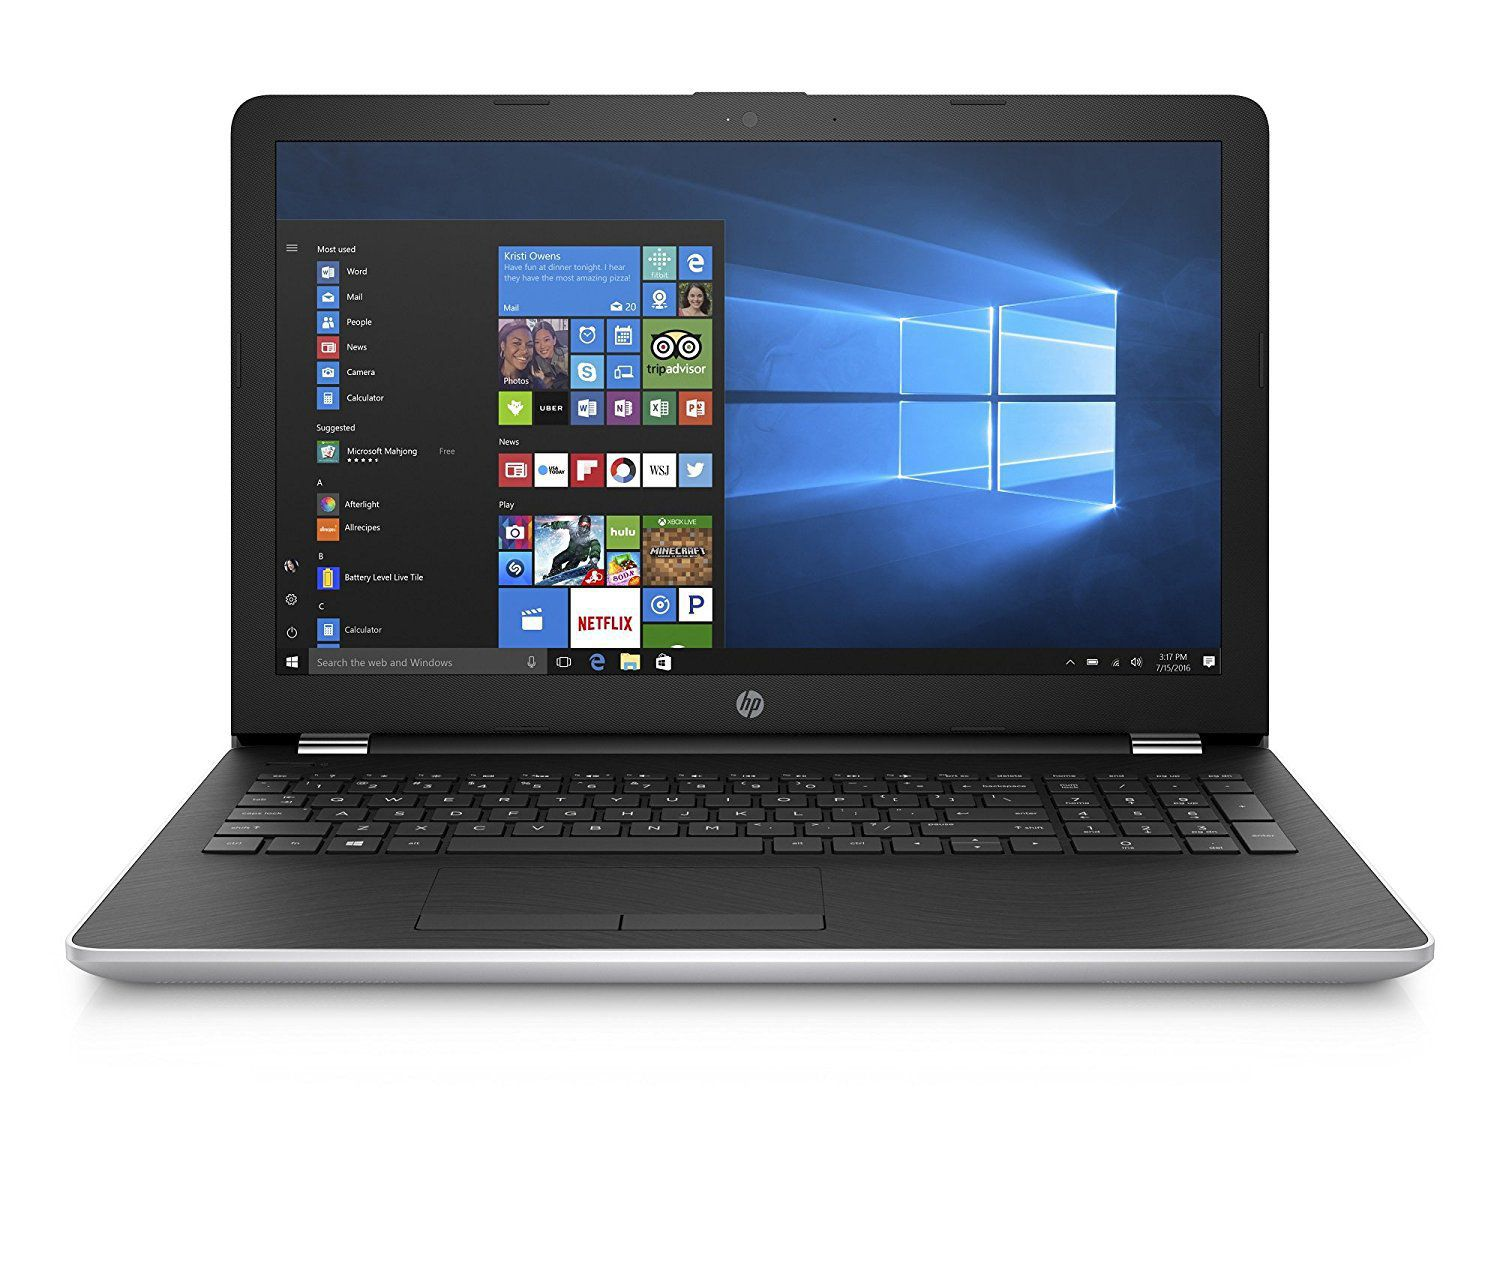 HP 15-BS670TX (3WD64PA) LAPTOP (CORE I3 6TH GEN/4 GB/1 TB/WINDOWS 10/2 GB)